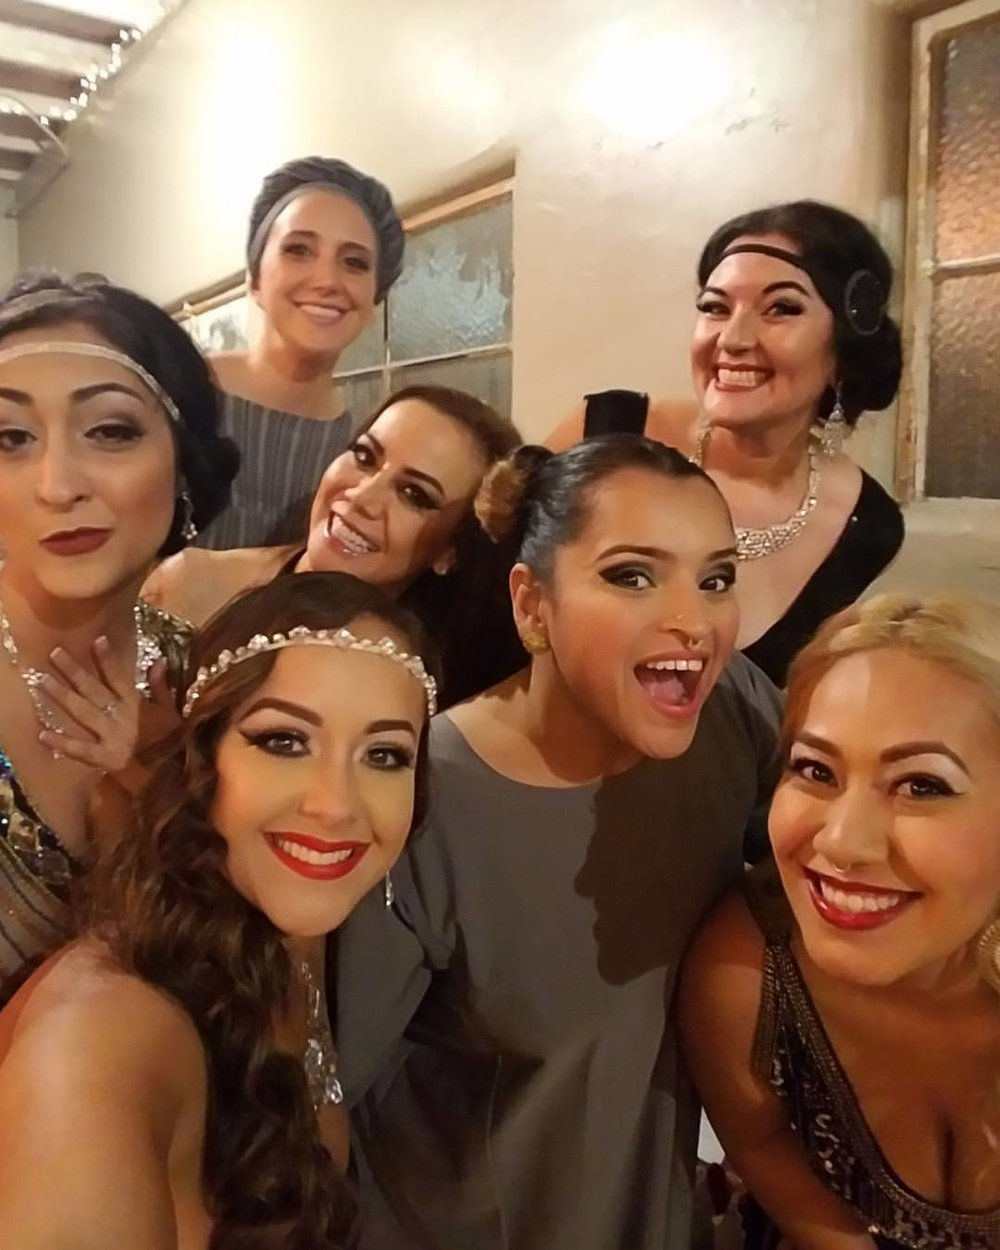 Dancer selfies backstage~ Alia, Rita, May, Shana, Georgette, Jenn, Belen